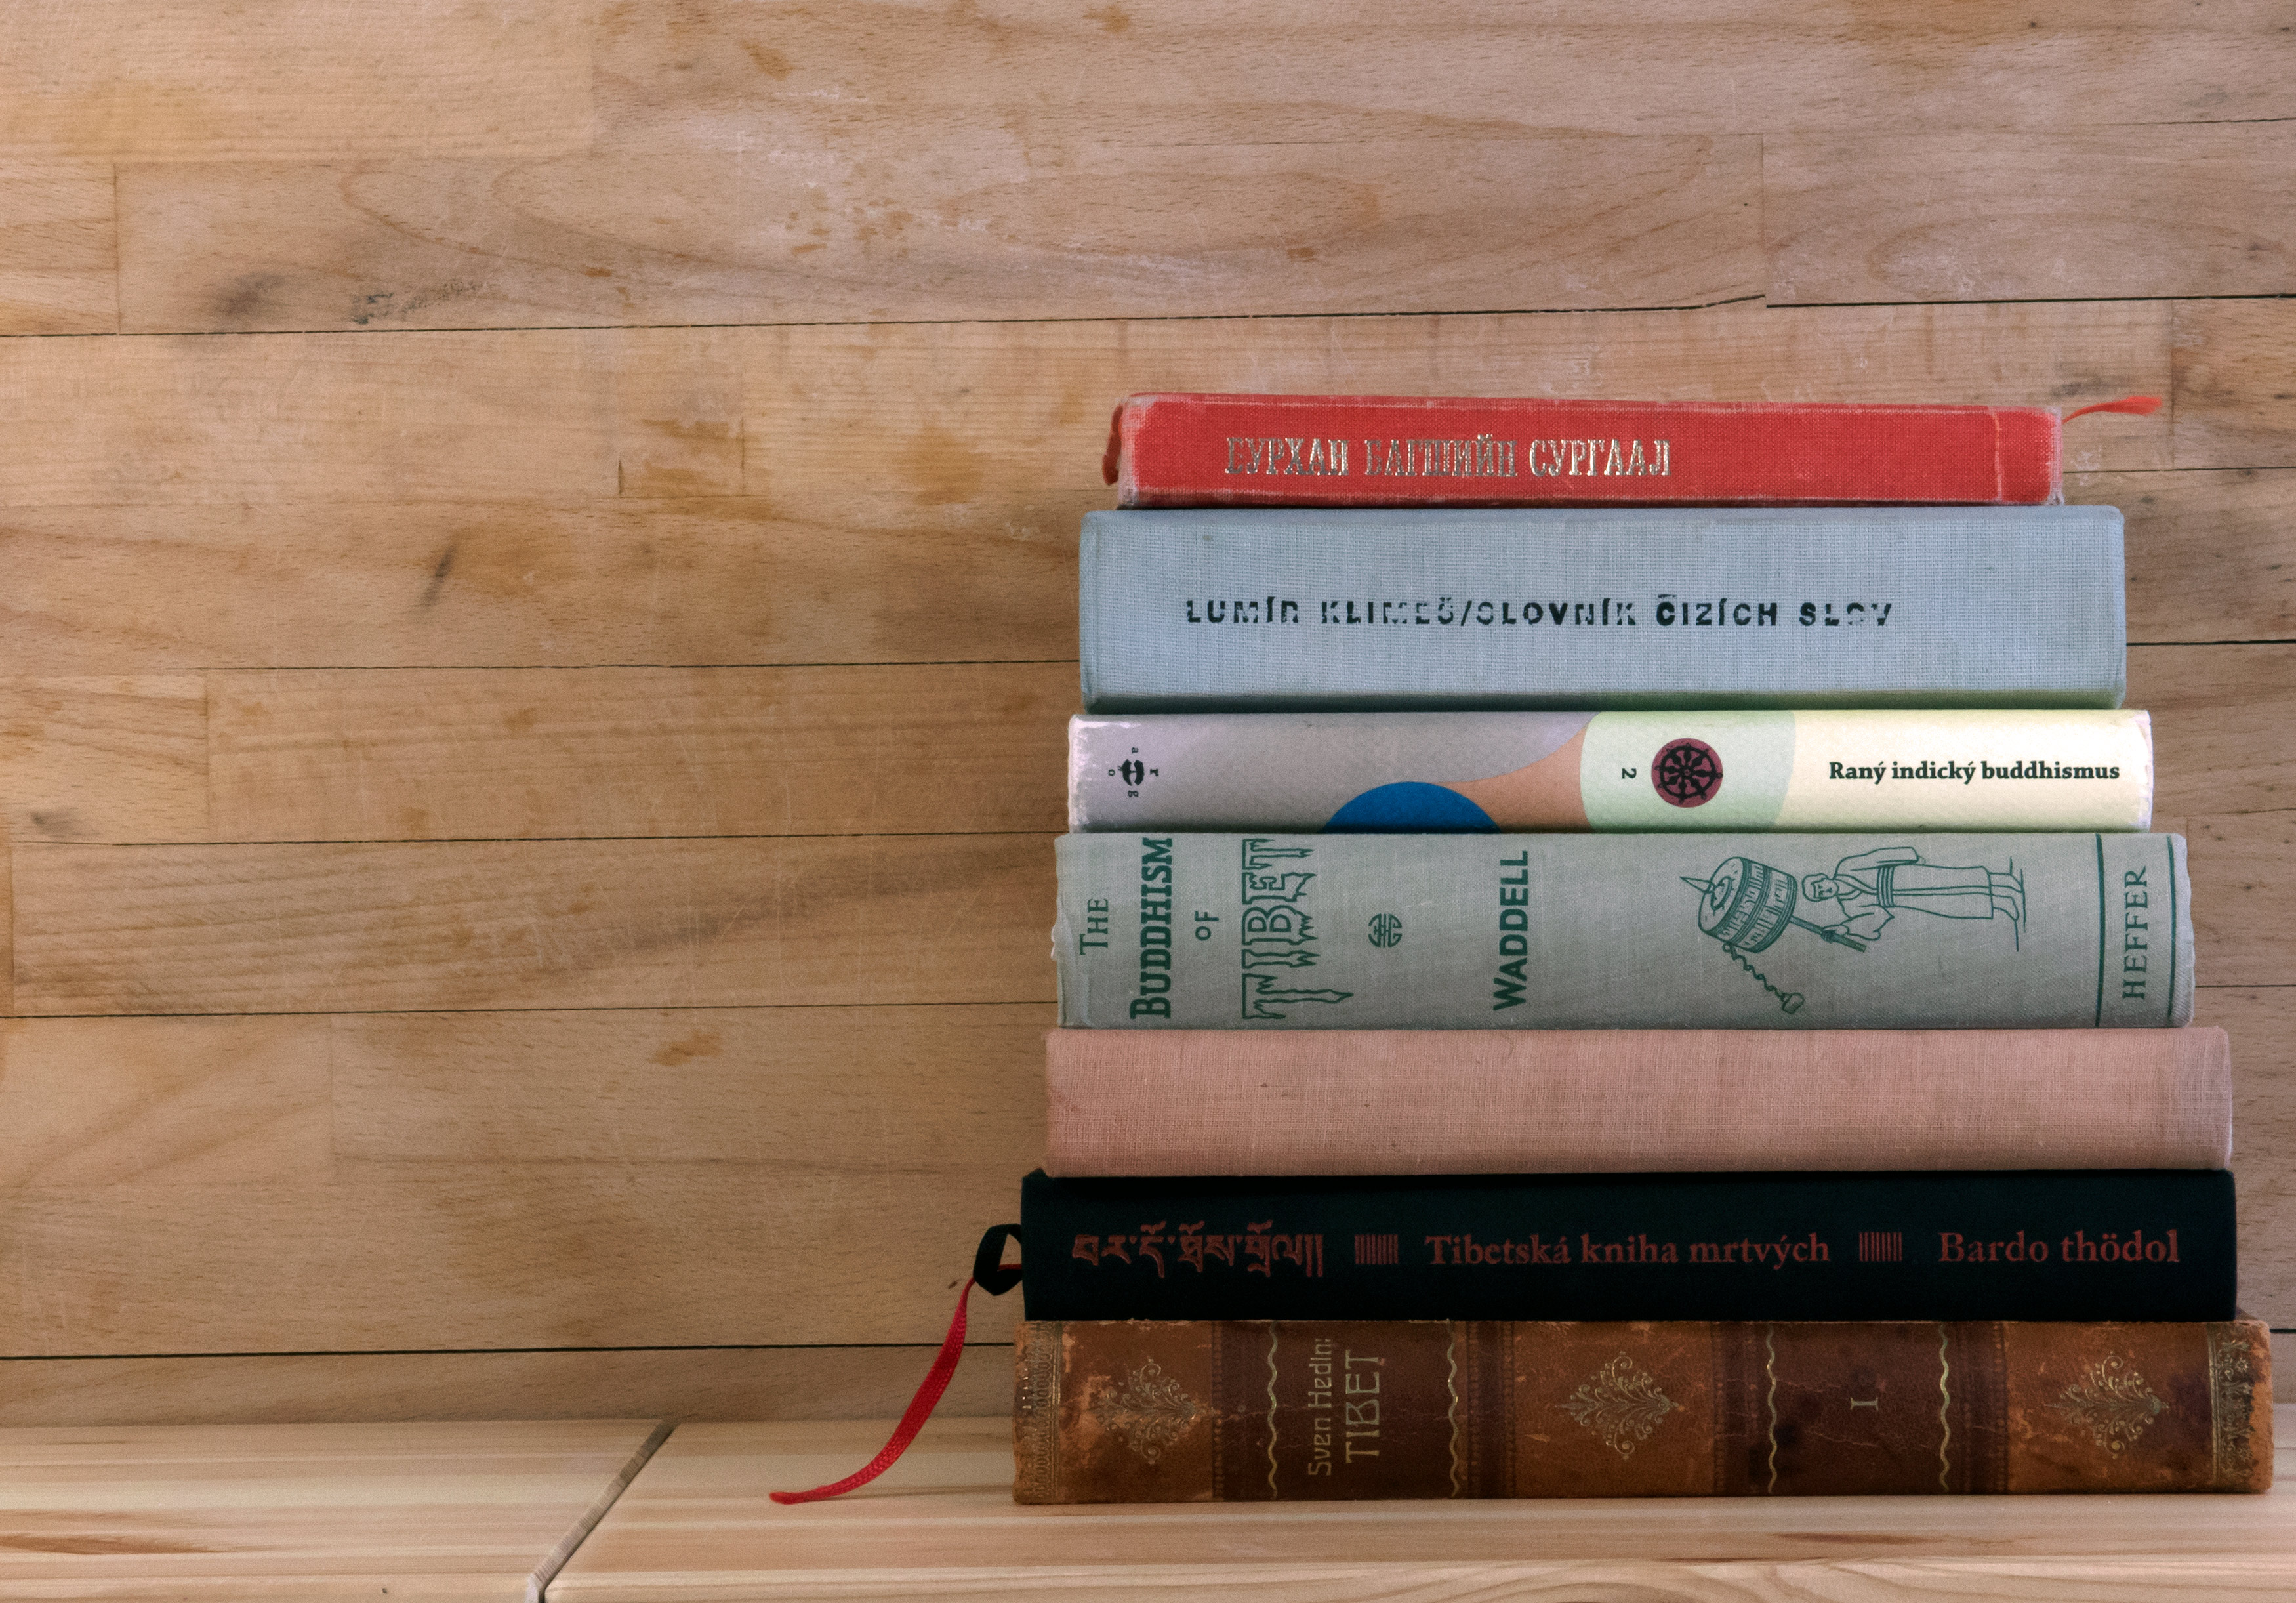 Free Image: Stack Of Books | Libreshot Public Domain Photos